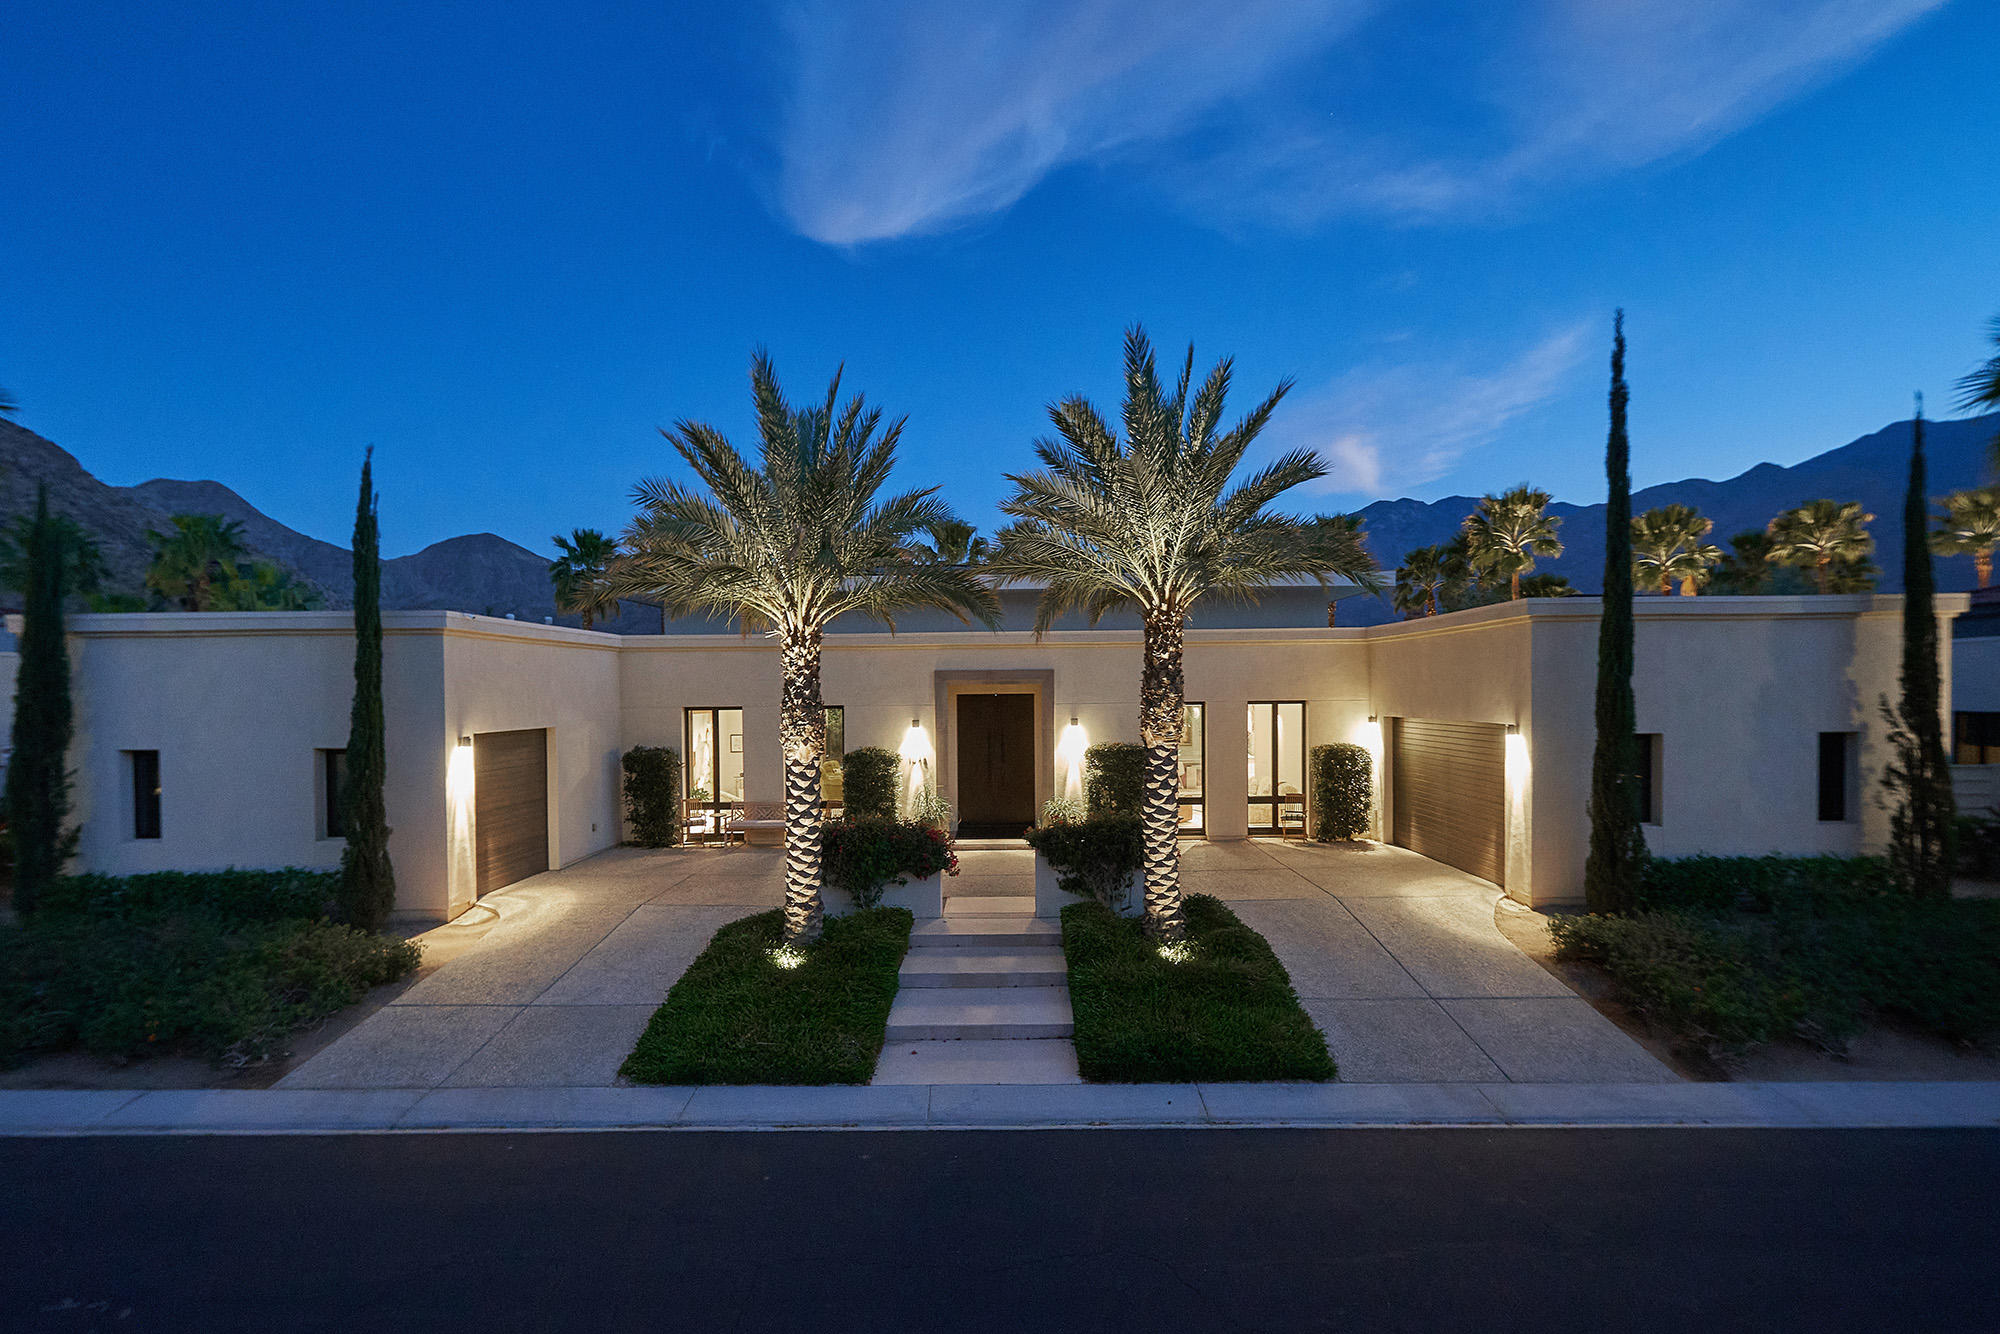 This spectacular and breathtaking architectural 2013 showcase estate has walls of glass and  southern, western and eastern mountain views from inside and out! This highly upgraded home has 4 bedrooms + media room + an additional bonus room! The great room has three sets of Fleetwood sliders that open up to the very private resort backyard which includes a swimmer's pool, spa, firepit, outdoor kitchen, outdoor shower, cabana with misting system and lush landscaping with fruit trees. The Epicurean kitchen has two separate islands, two wine coolers, Italian glass cabinets, high end appliances including an ice maker, warming drawer and built-in coffee maker. There are two fully paid and owned solar systems that total approximately 26KW! Other upgrades include 4 Tesla Power Walls providing full home backup in case of a grid power outage, Tesla car charger, whole house high efficiency air cleaner plus germicidal UVC lamps on all HVAC units, whole house water filtration system, Nuvo audio including outdoor speakers and split air conditioning in both garages! Located in South Palm Springs on fee land (you own the land) in the guard gated community of Monte Sereno!